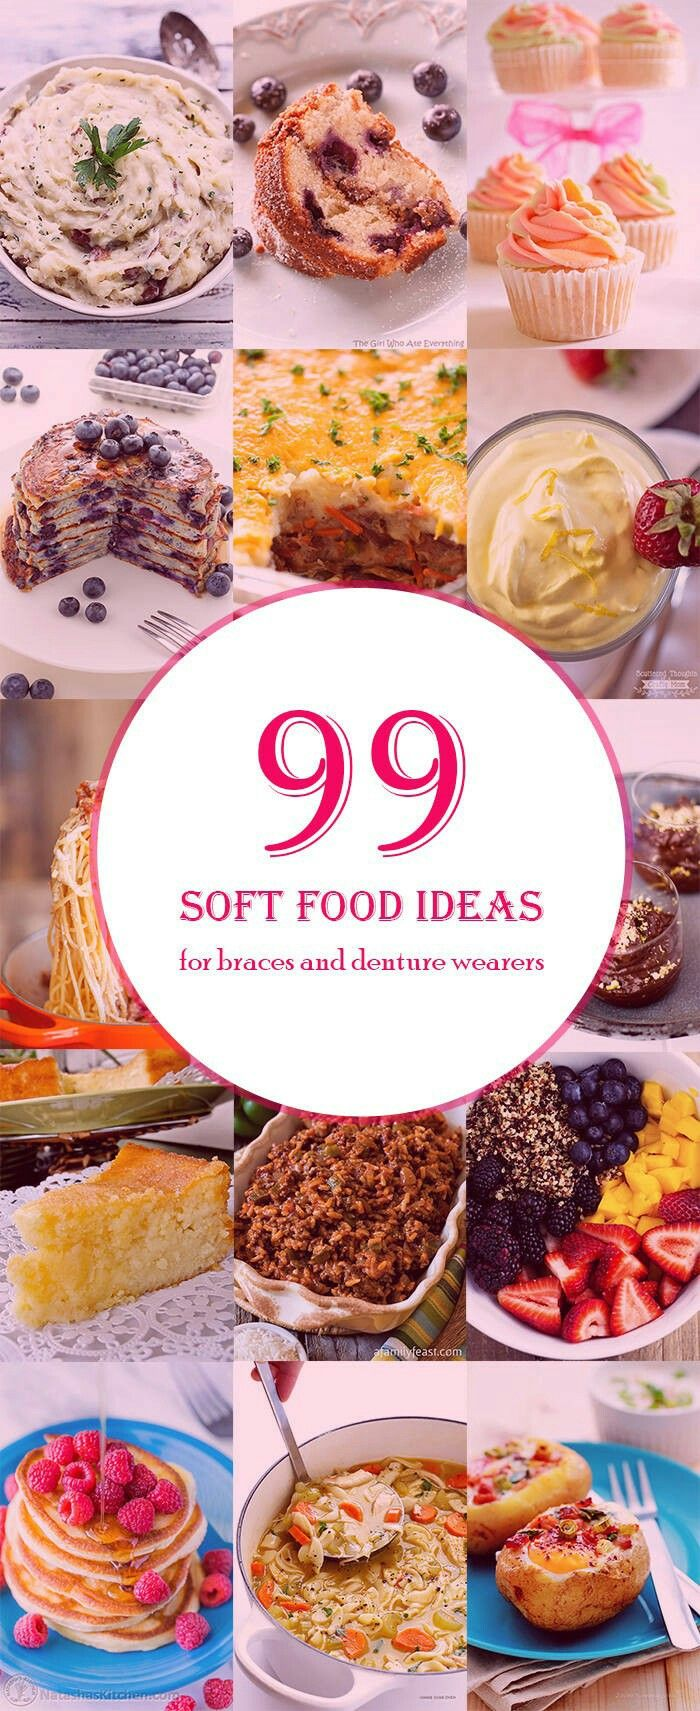 What's for dinner? by Serena Schaugaard Soft foods to